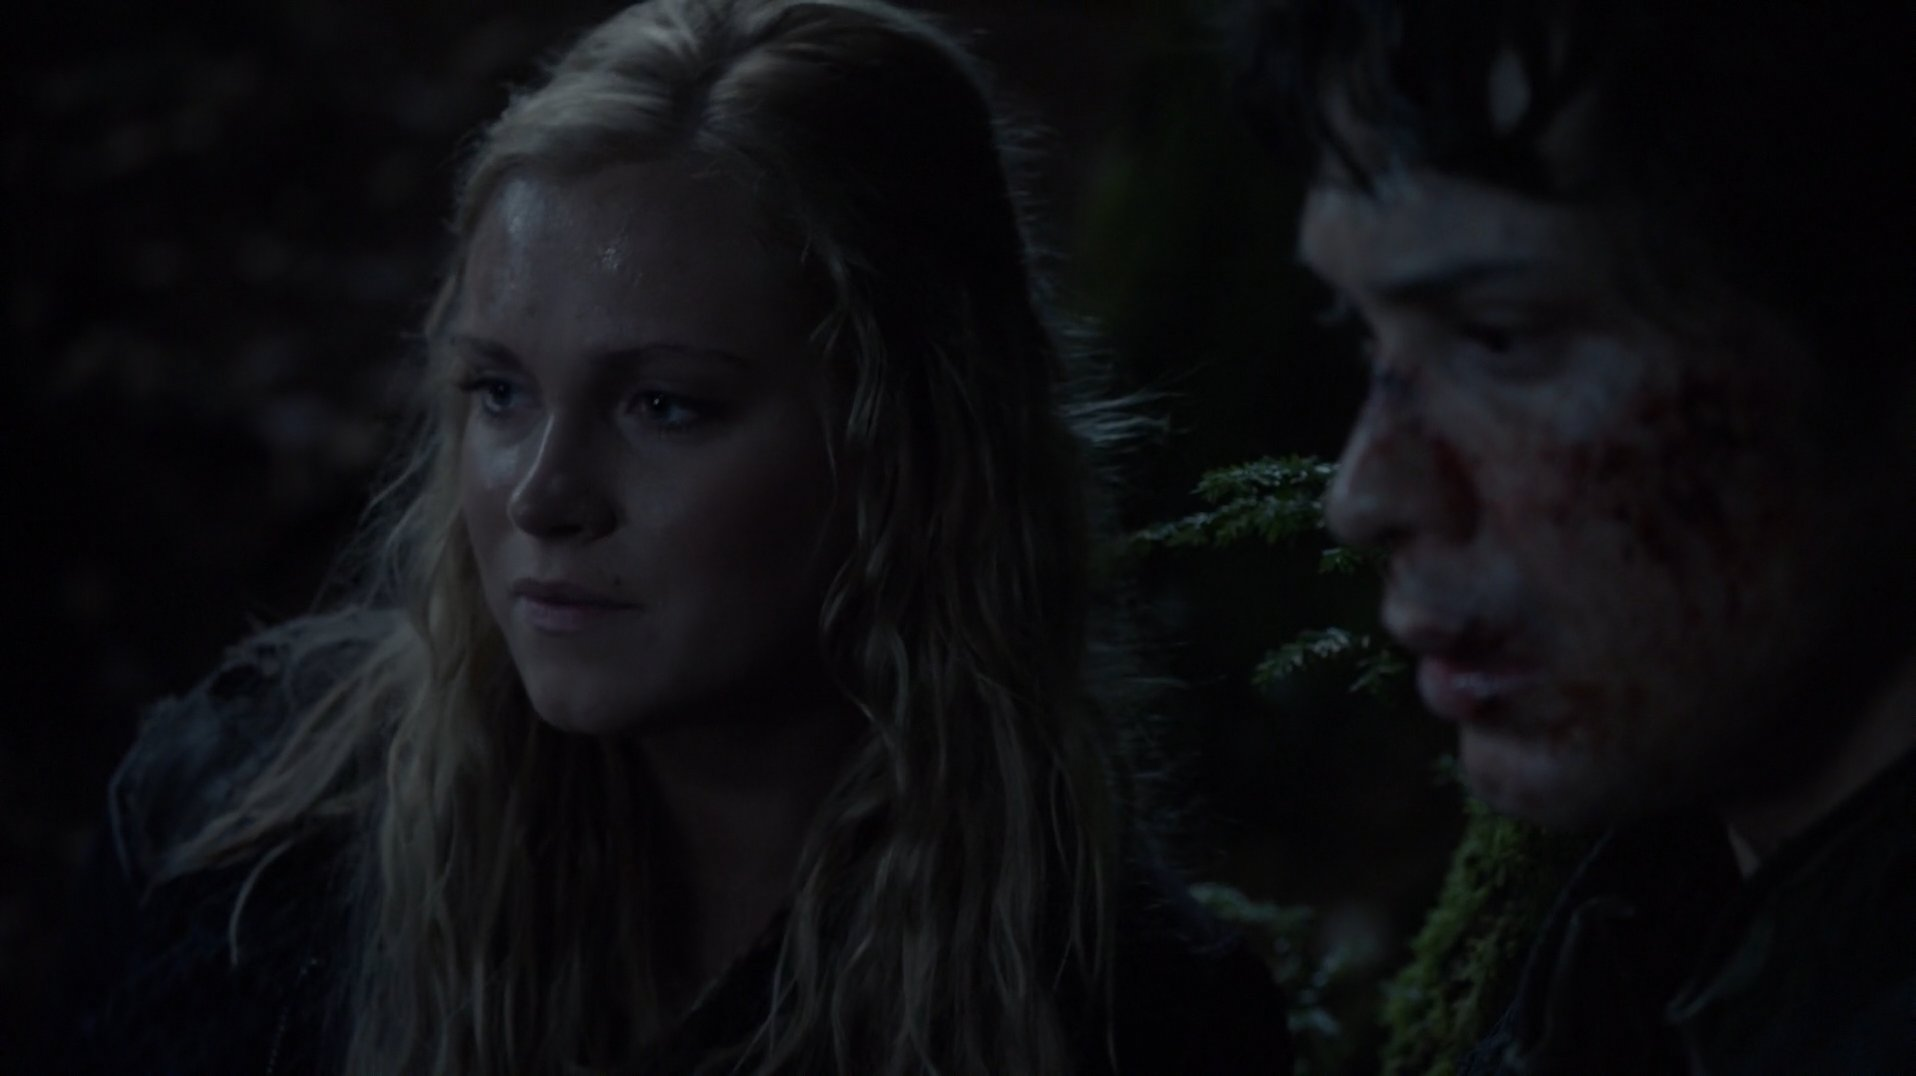 Clarke and Bellamy open up to each other